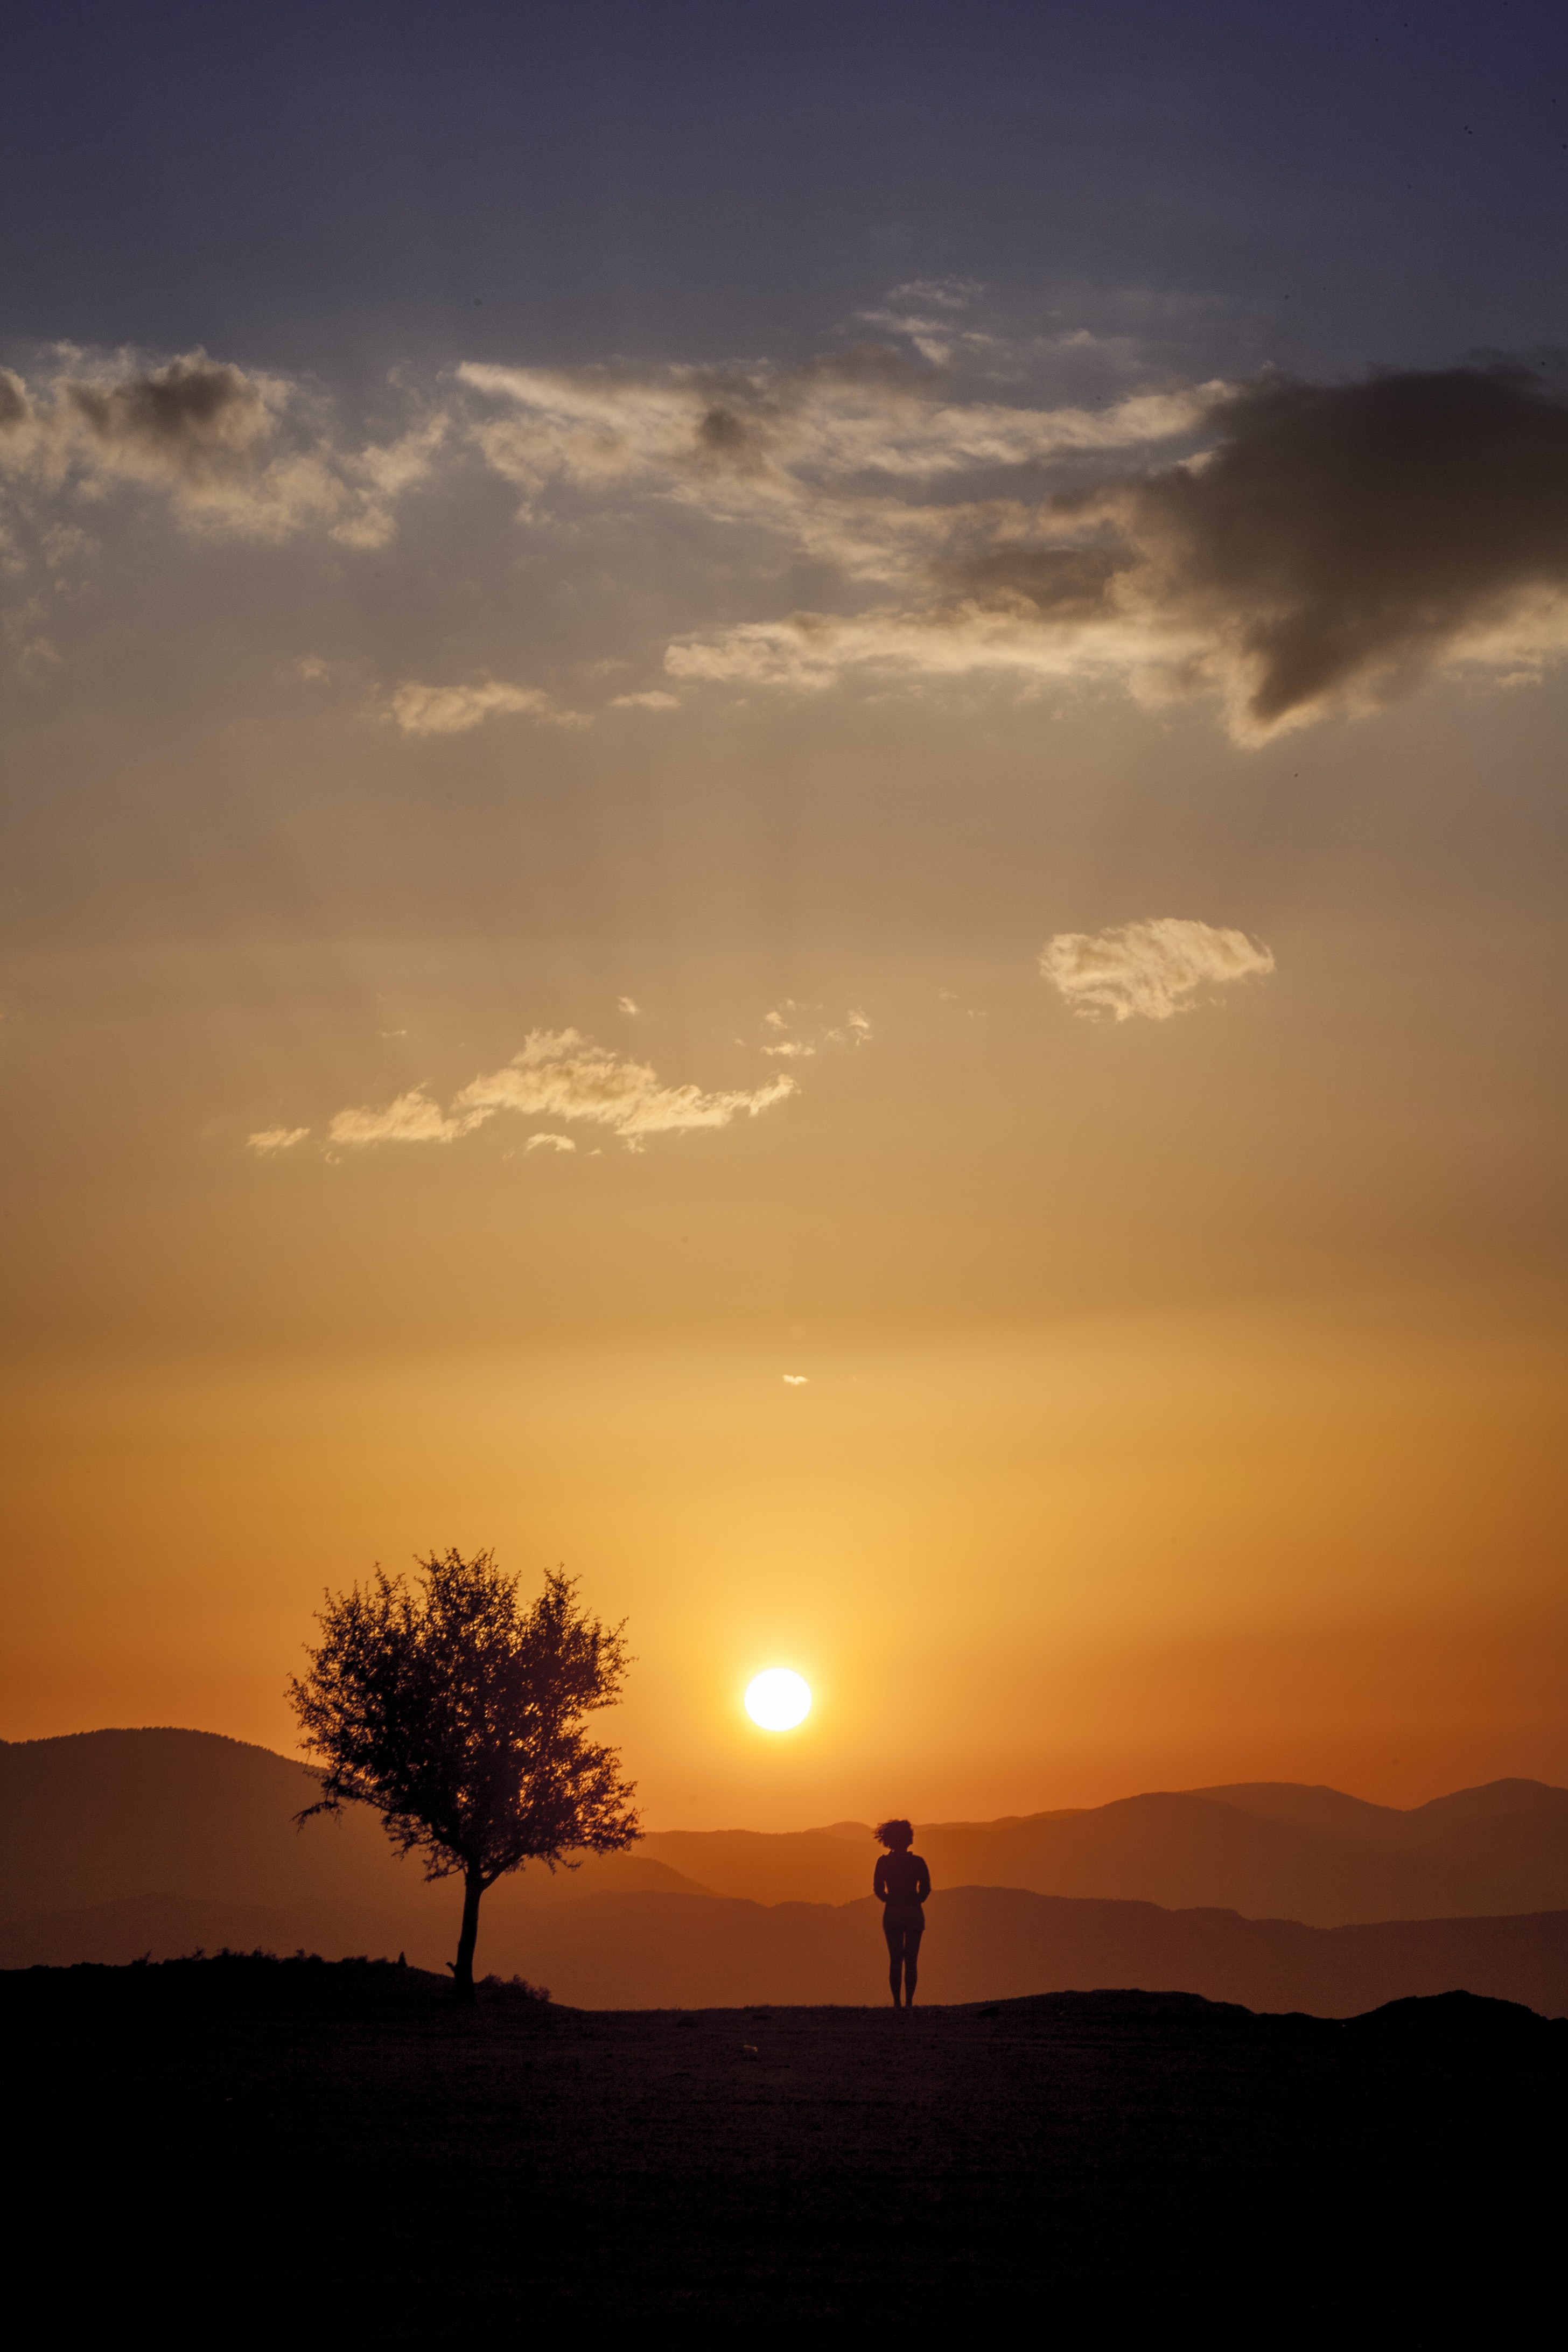 silhoutte of person in sunset